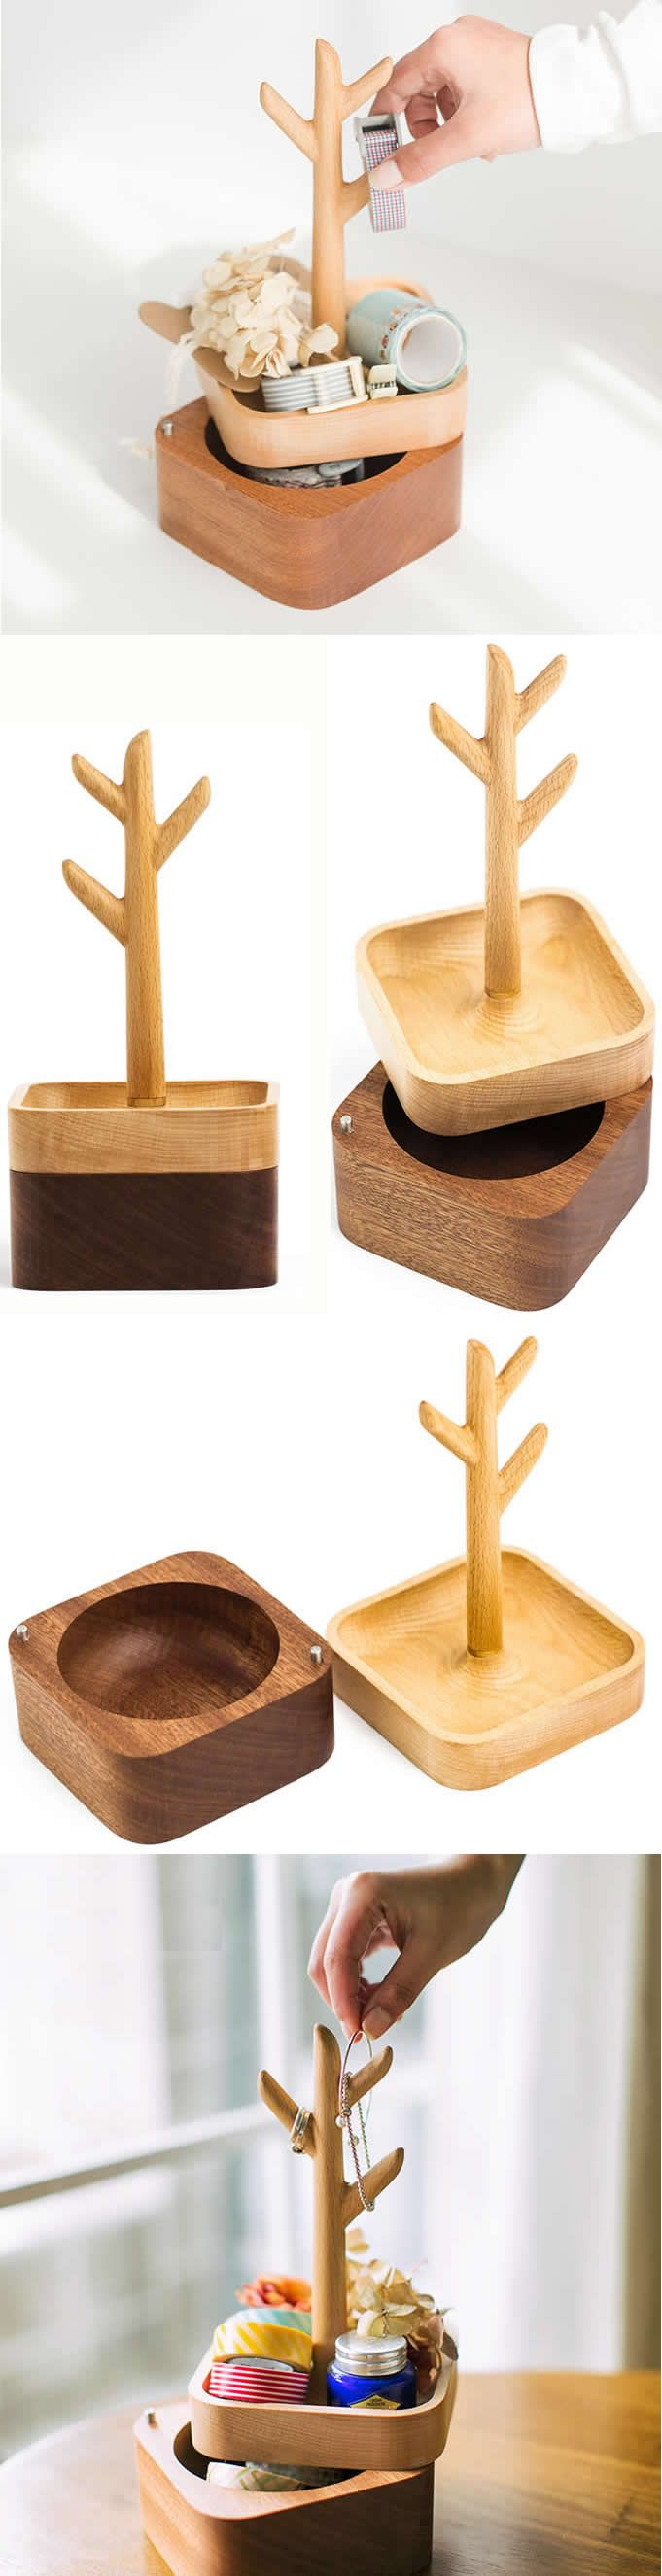 2 Tier Wooden Tree Office Desk Stationery Organizer Jewelry Ornaments display Organizer Box Holder